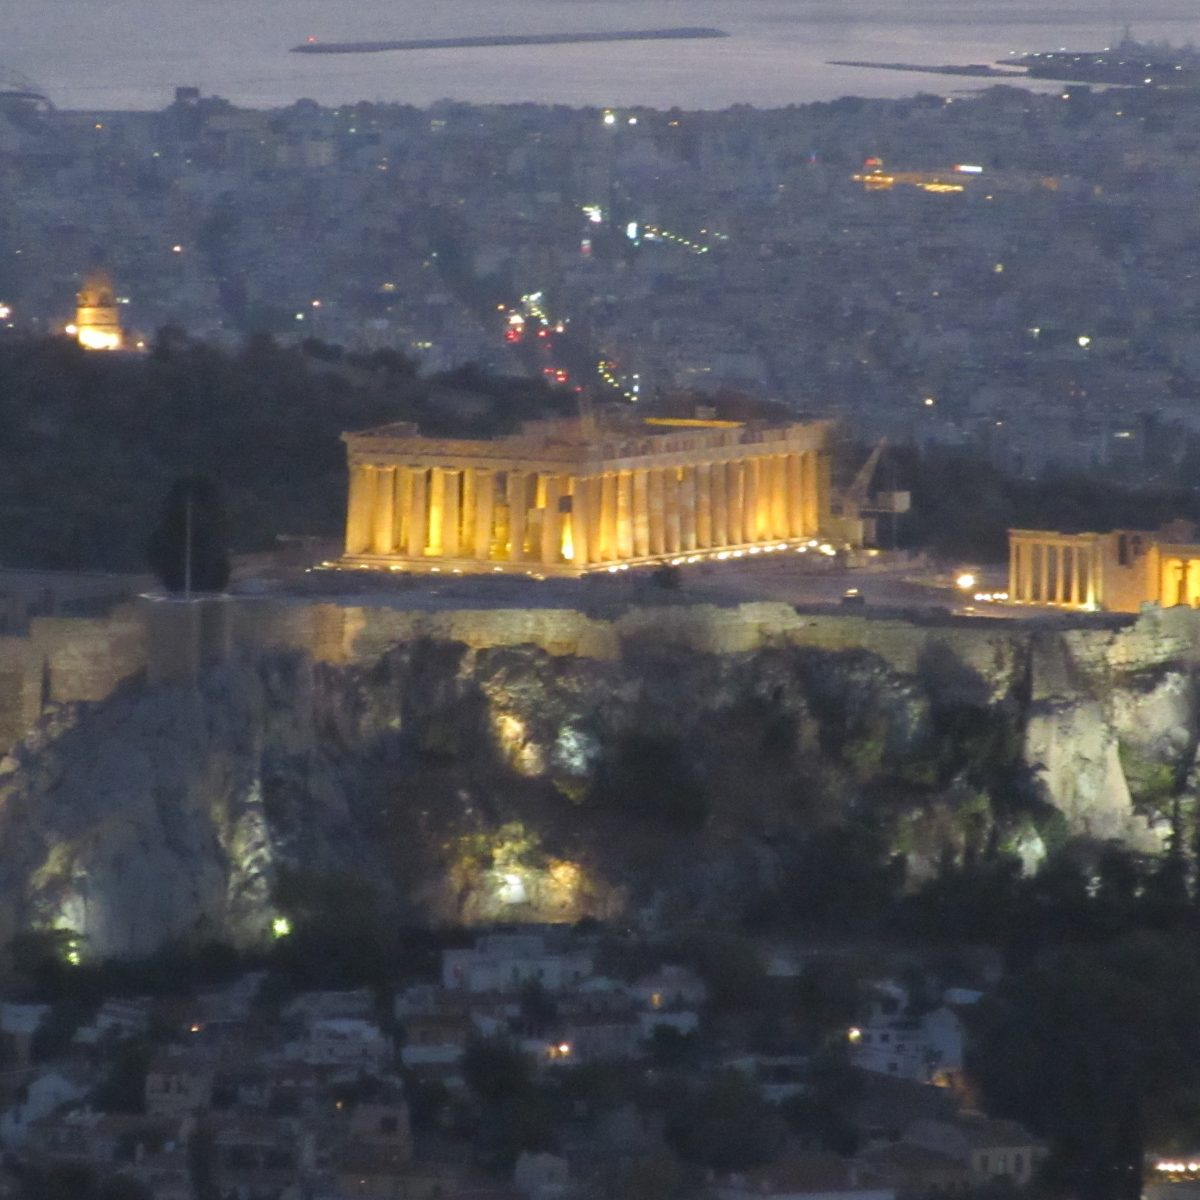 The Acrpolis of Athens